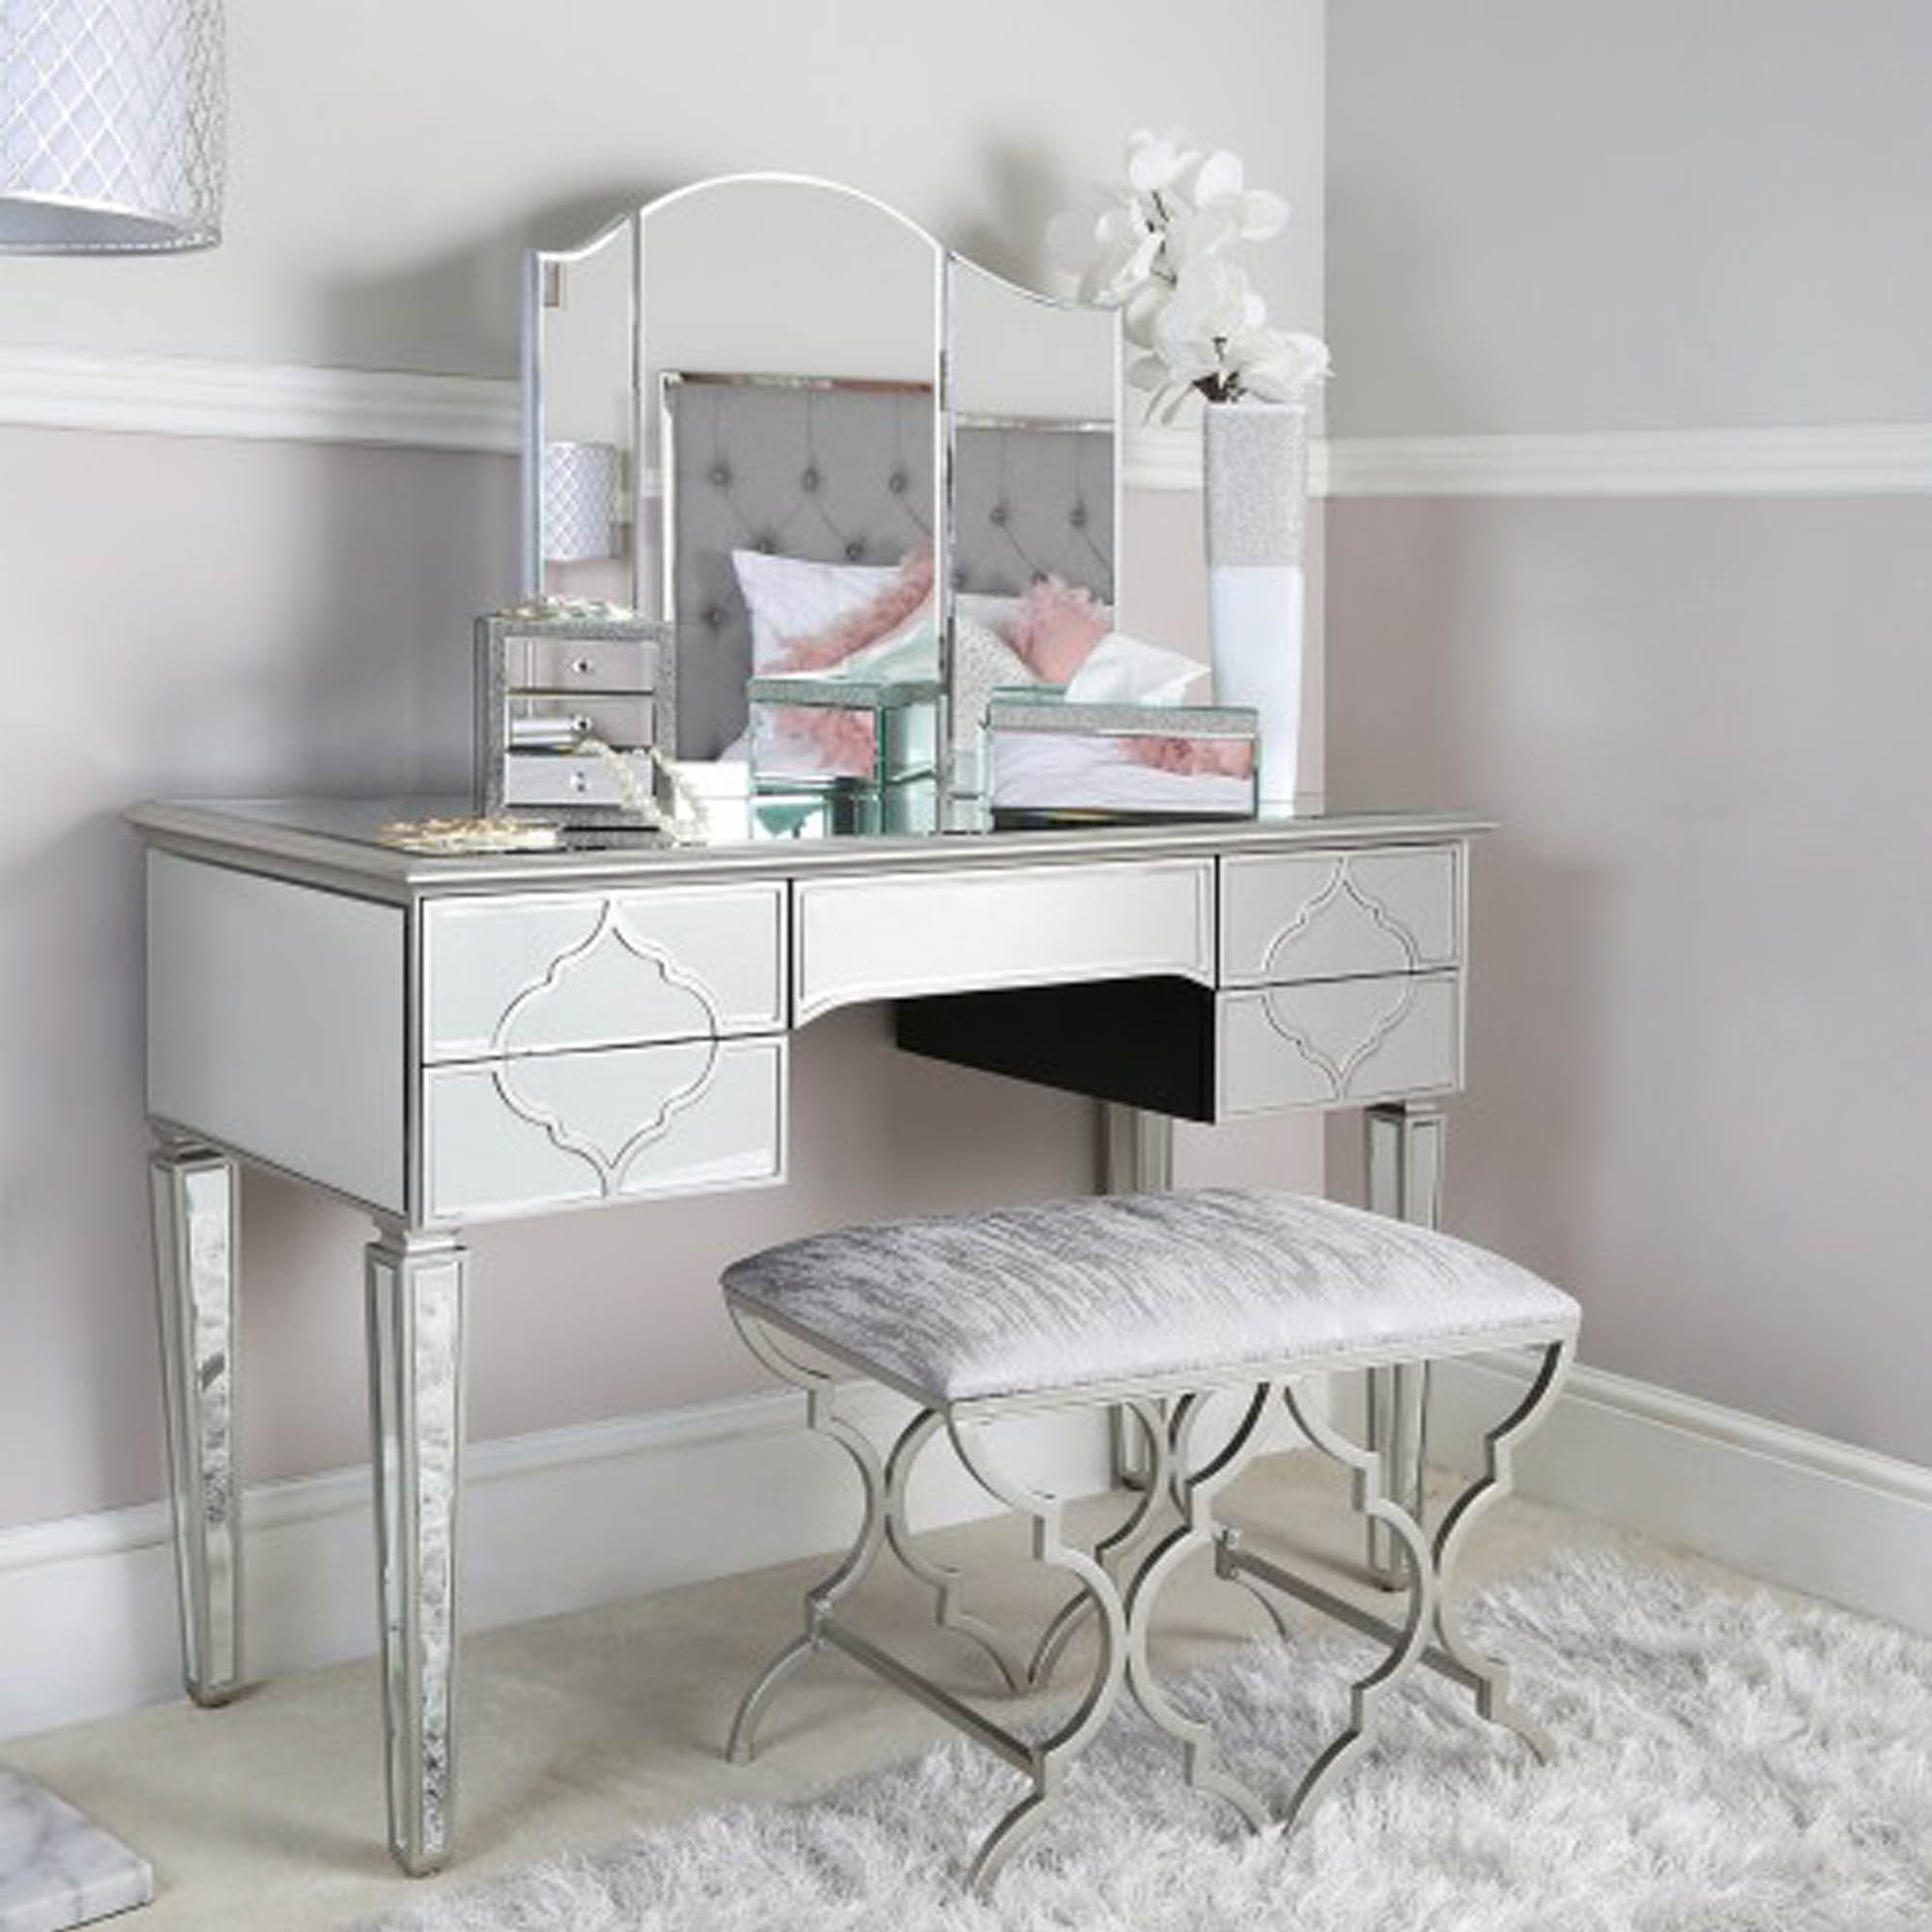 Marrakesh Silver Mirror Bedroom Stool Modern Contemporary Stools